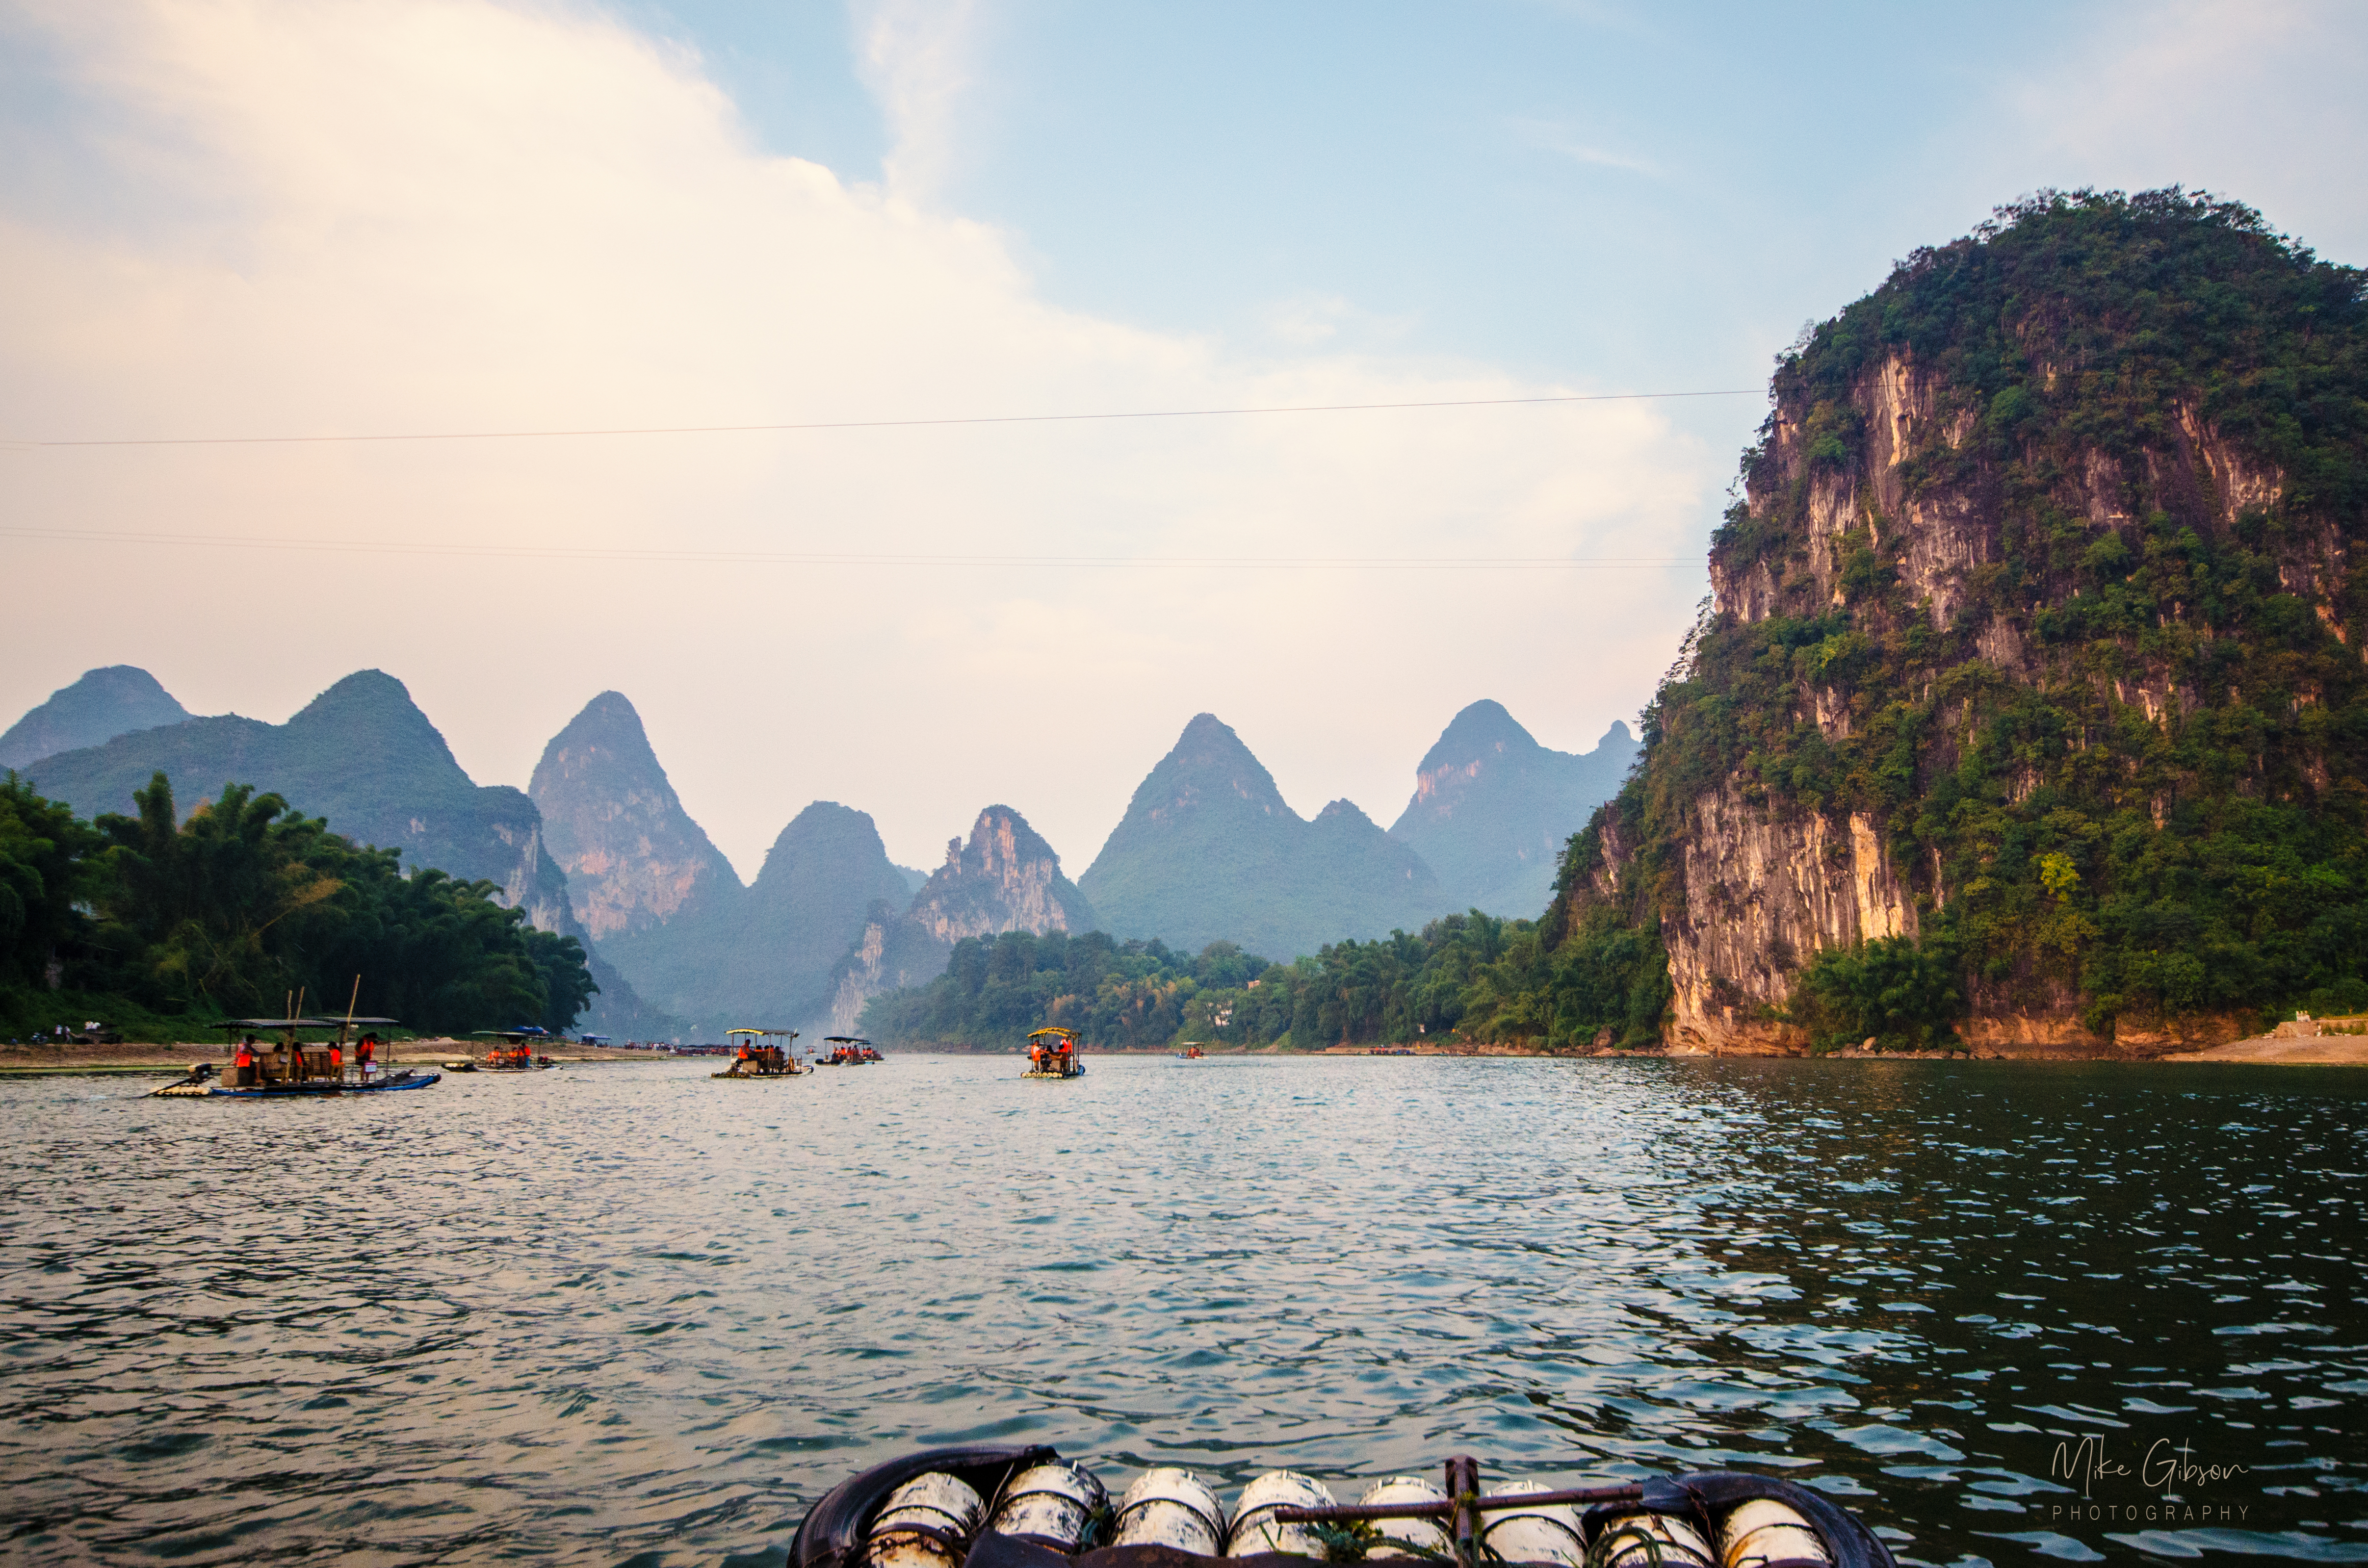 Raft on Li River mgp.jpg